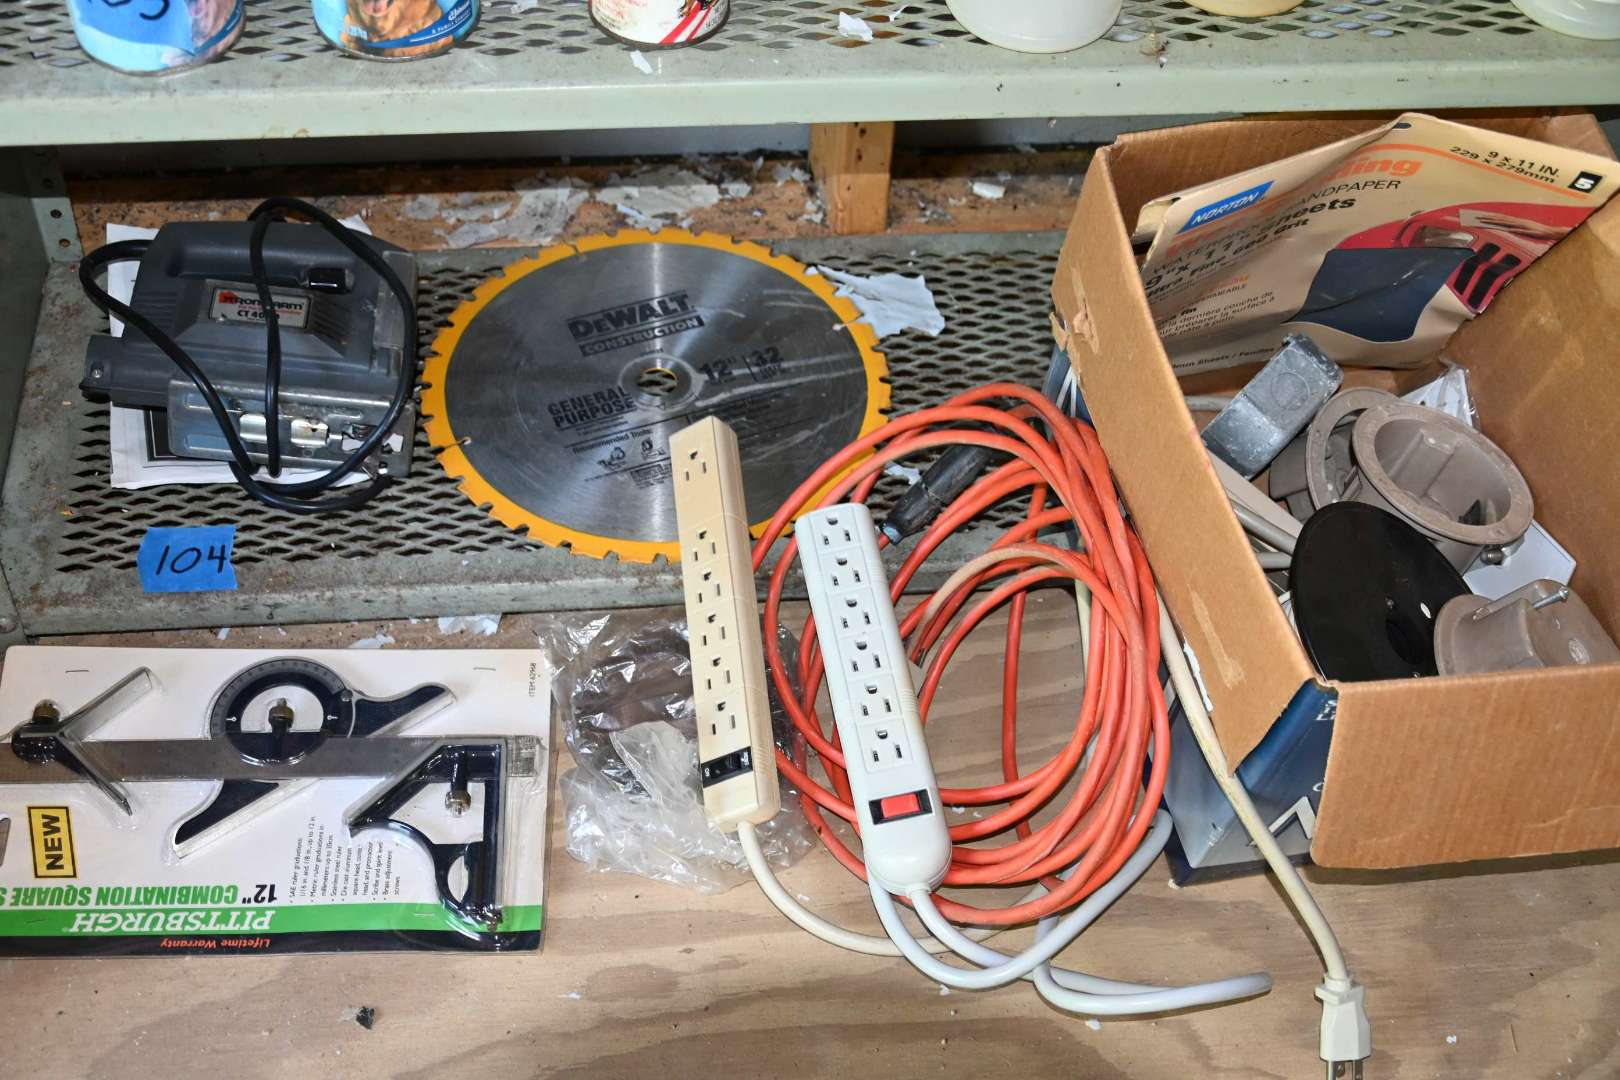 Lot # 104 Contents of shelf, tools, levels, extension cord, blade